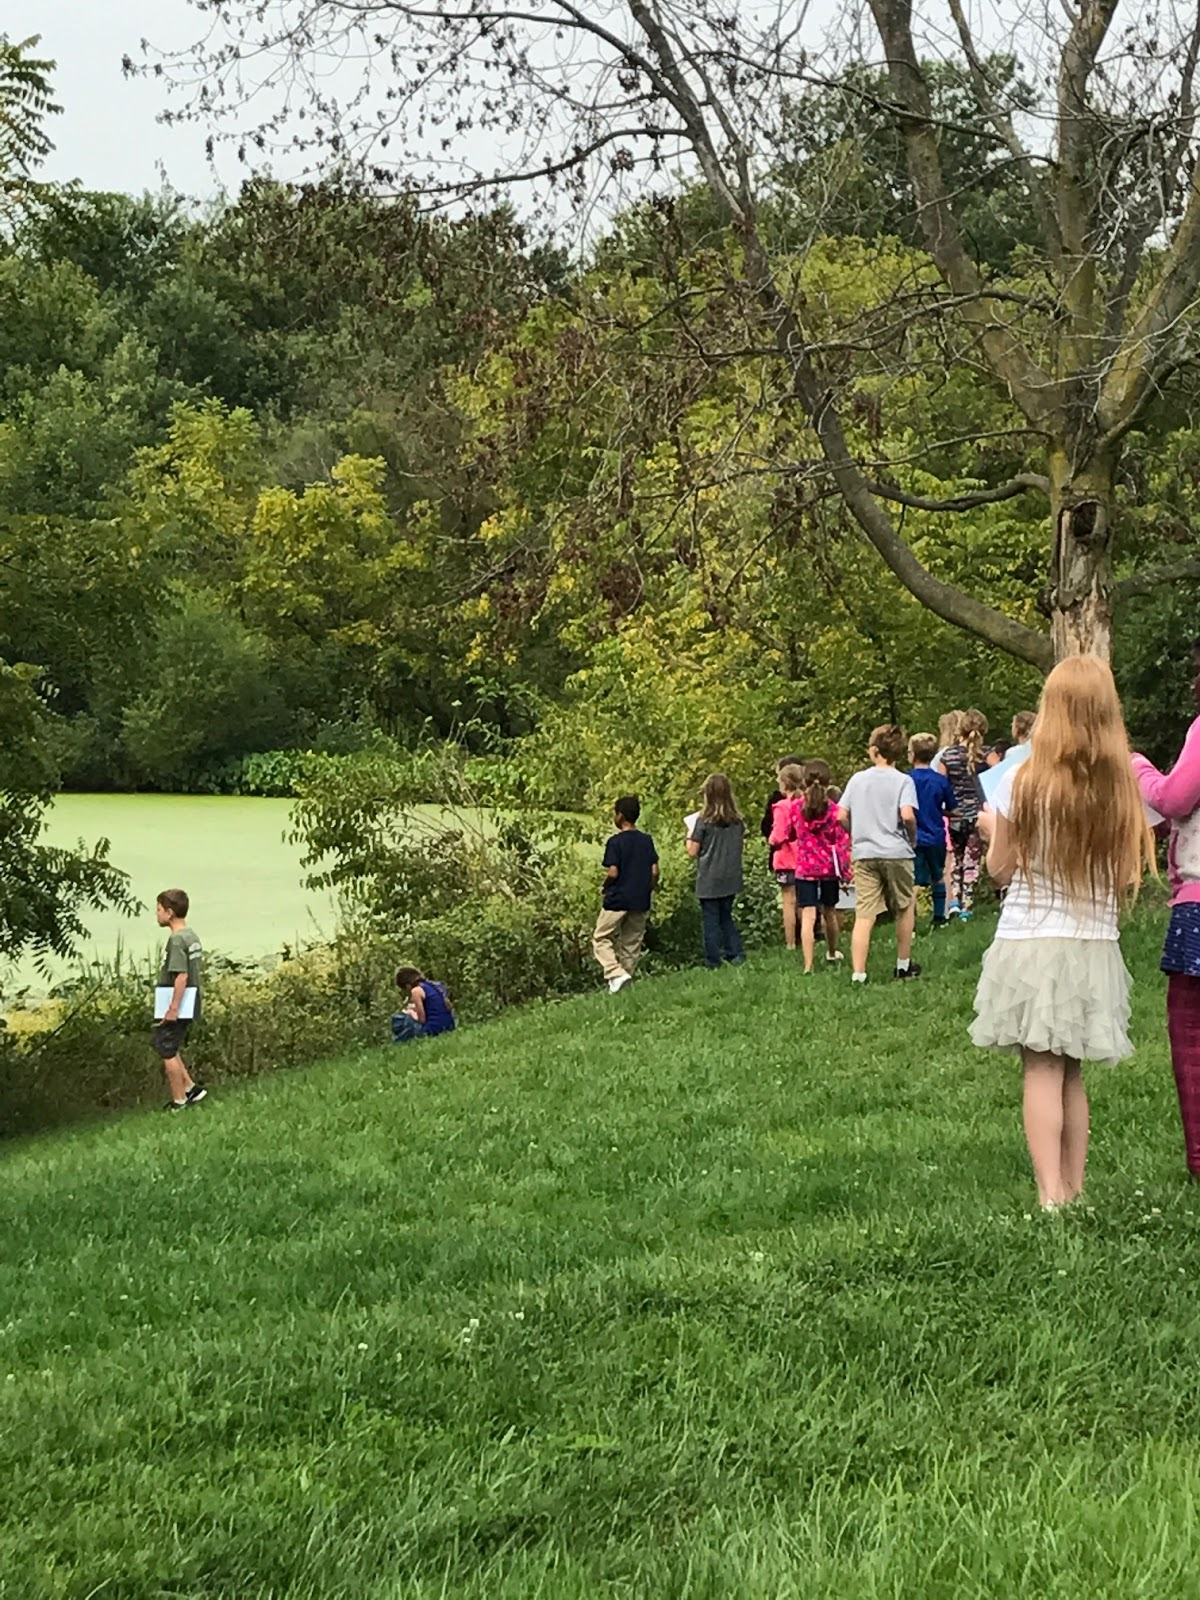 Making Observations Of The Large Pond